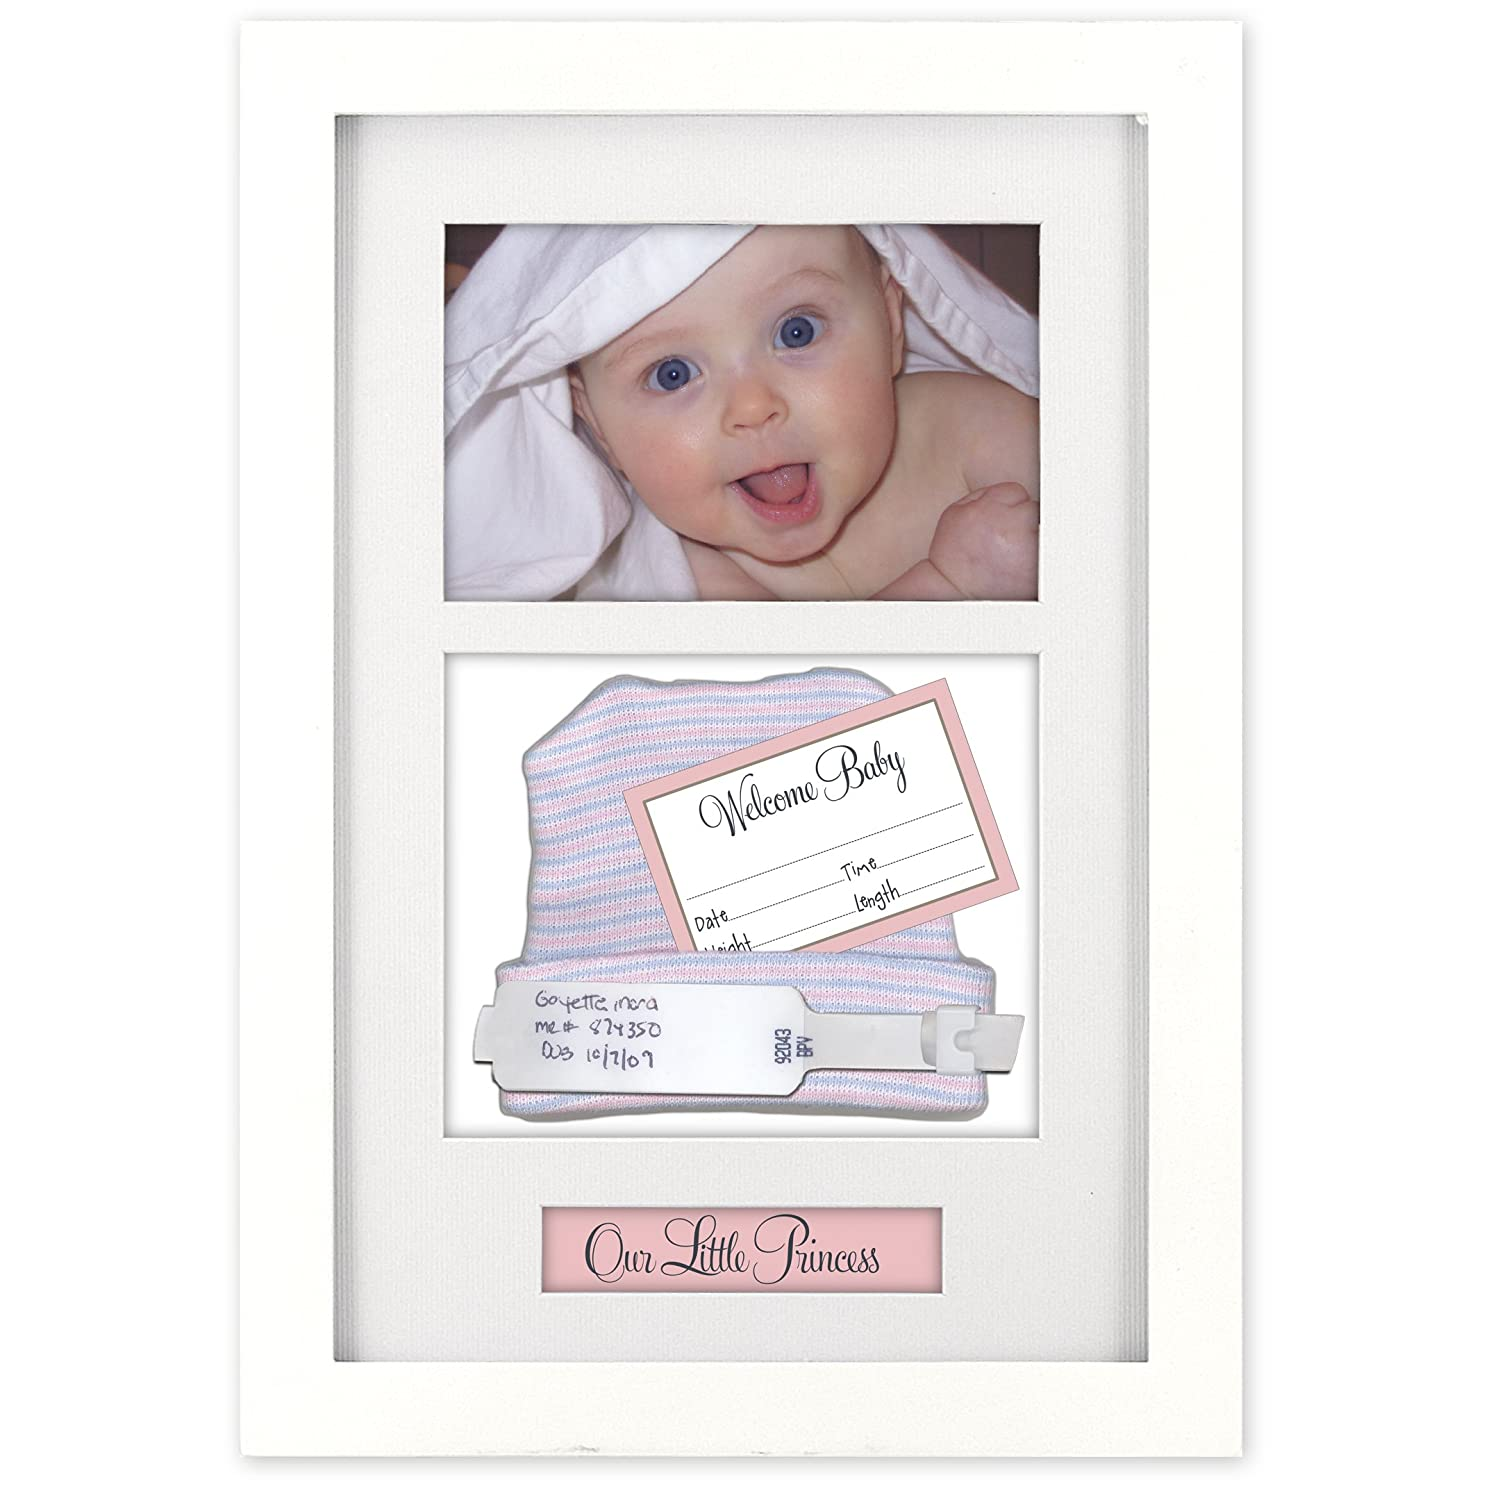 Amazon malden international designs baby memories baby memoto amazon malden international designs baby memories baby memoto shadowbox picture frame 4x6 white home kitchen jeuxipadfo Images